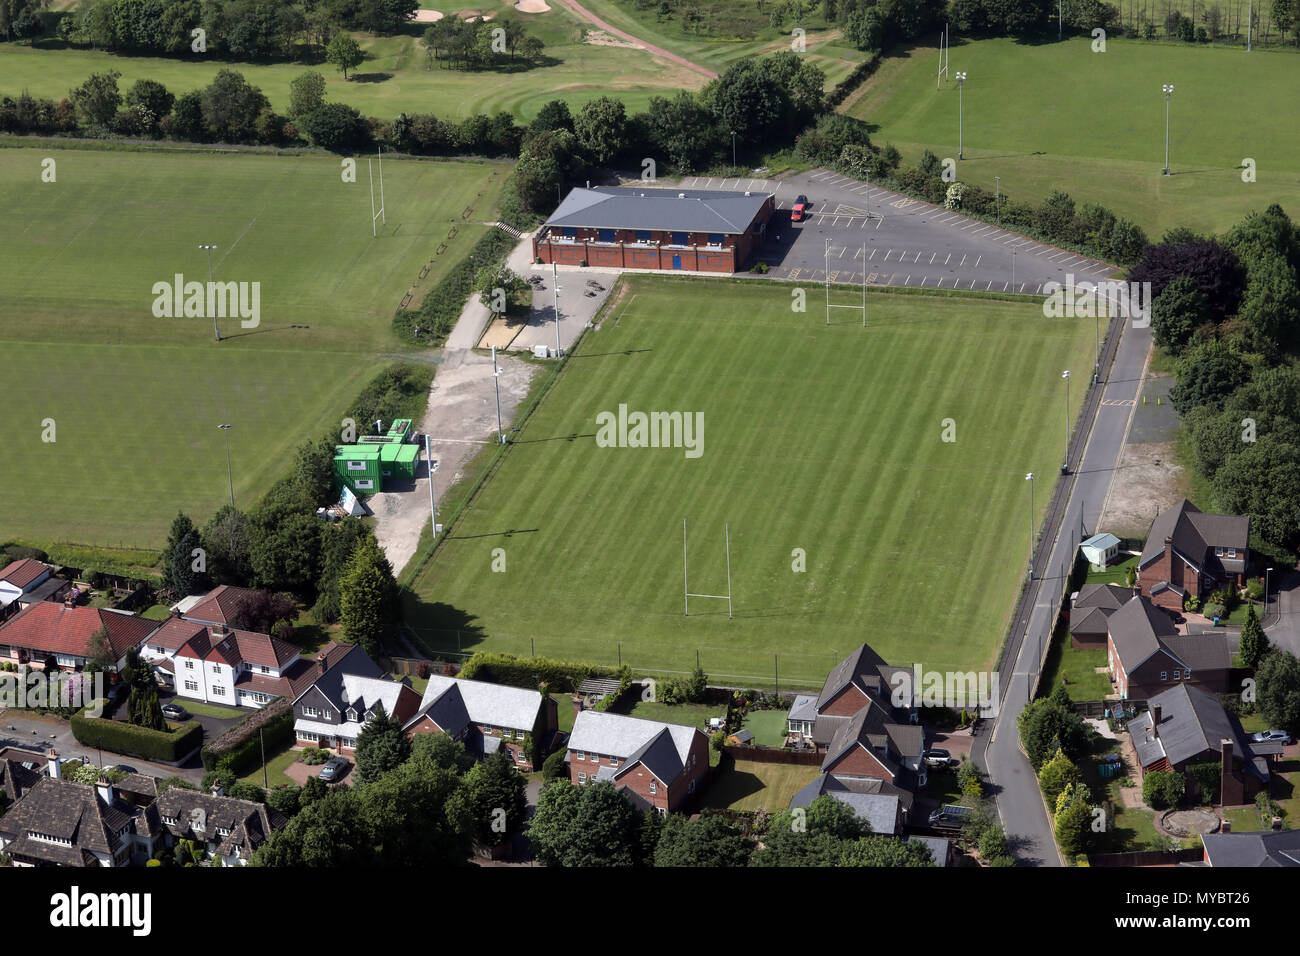 aerial view of Rochdale Rugby Union Club - Stock Image